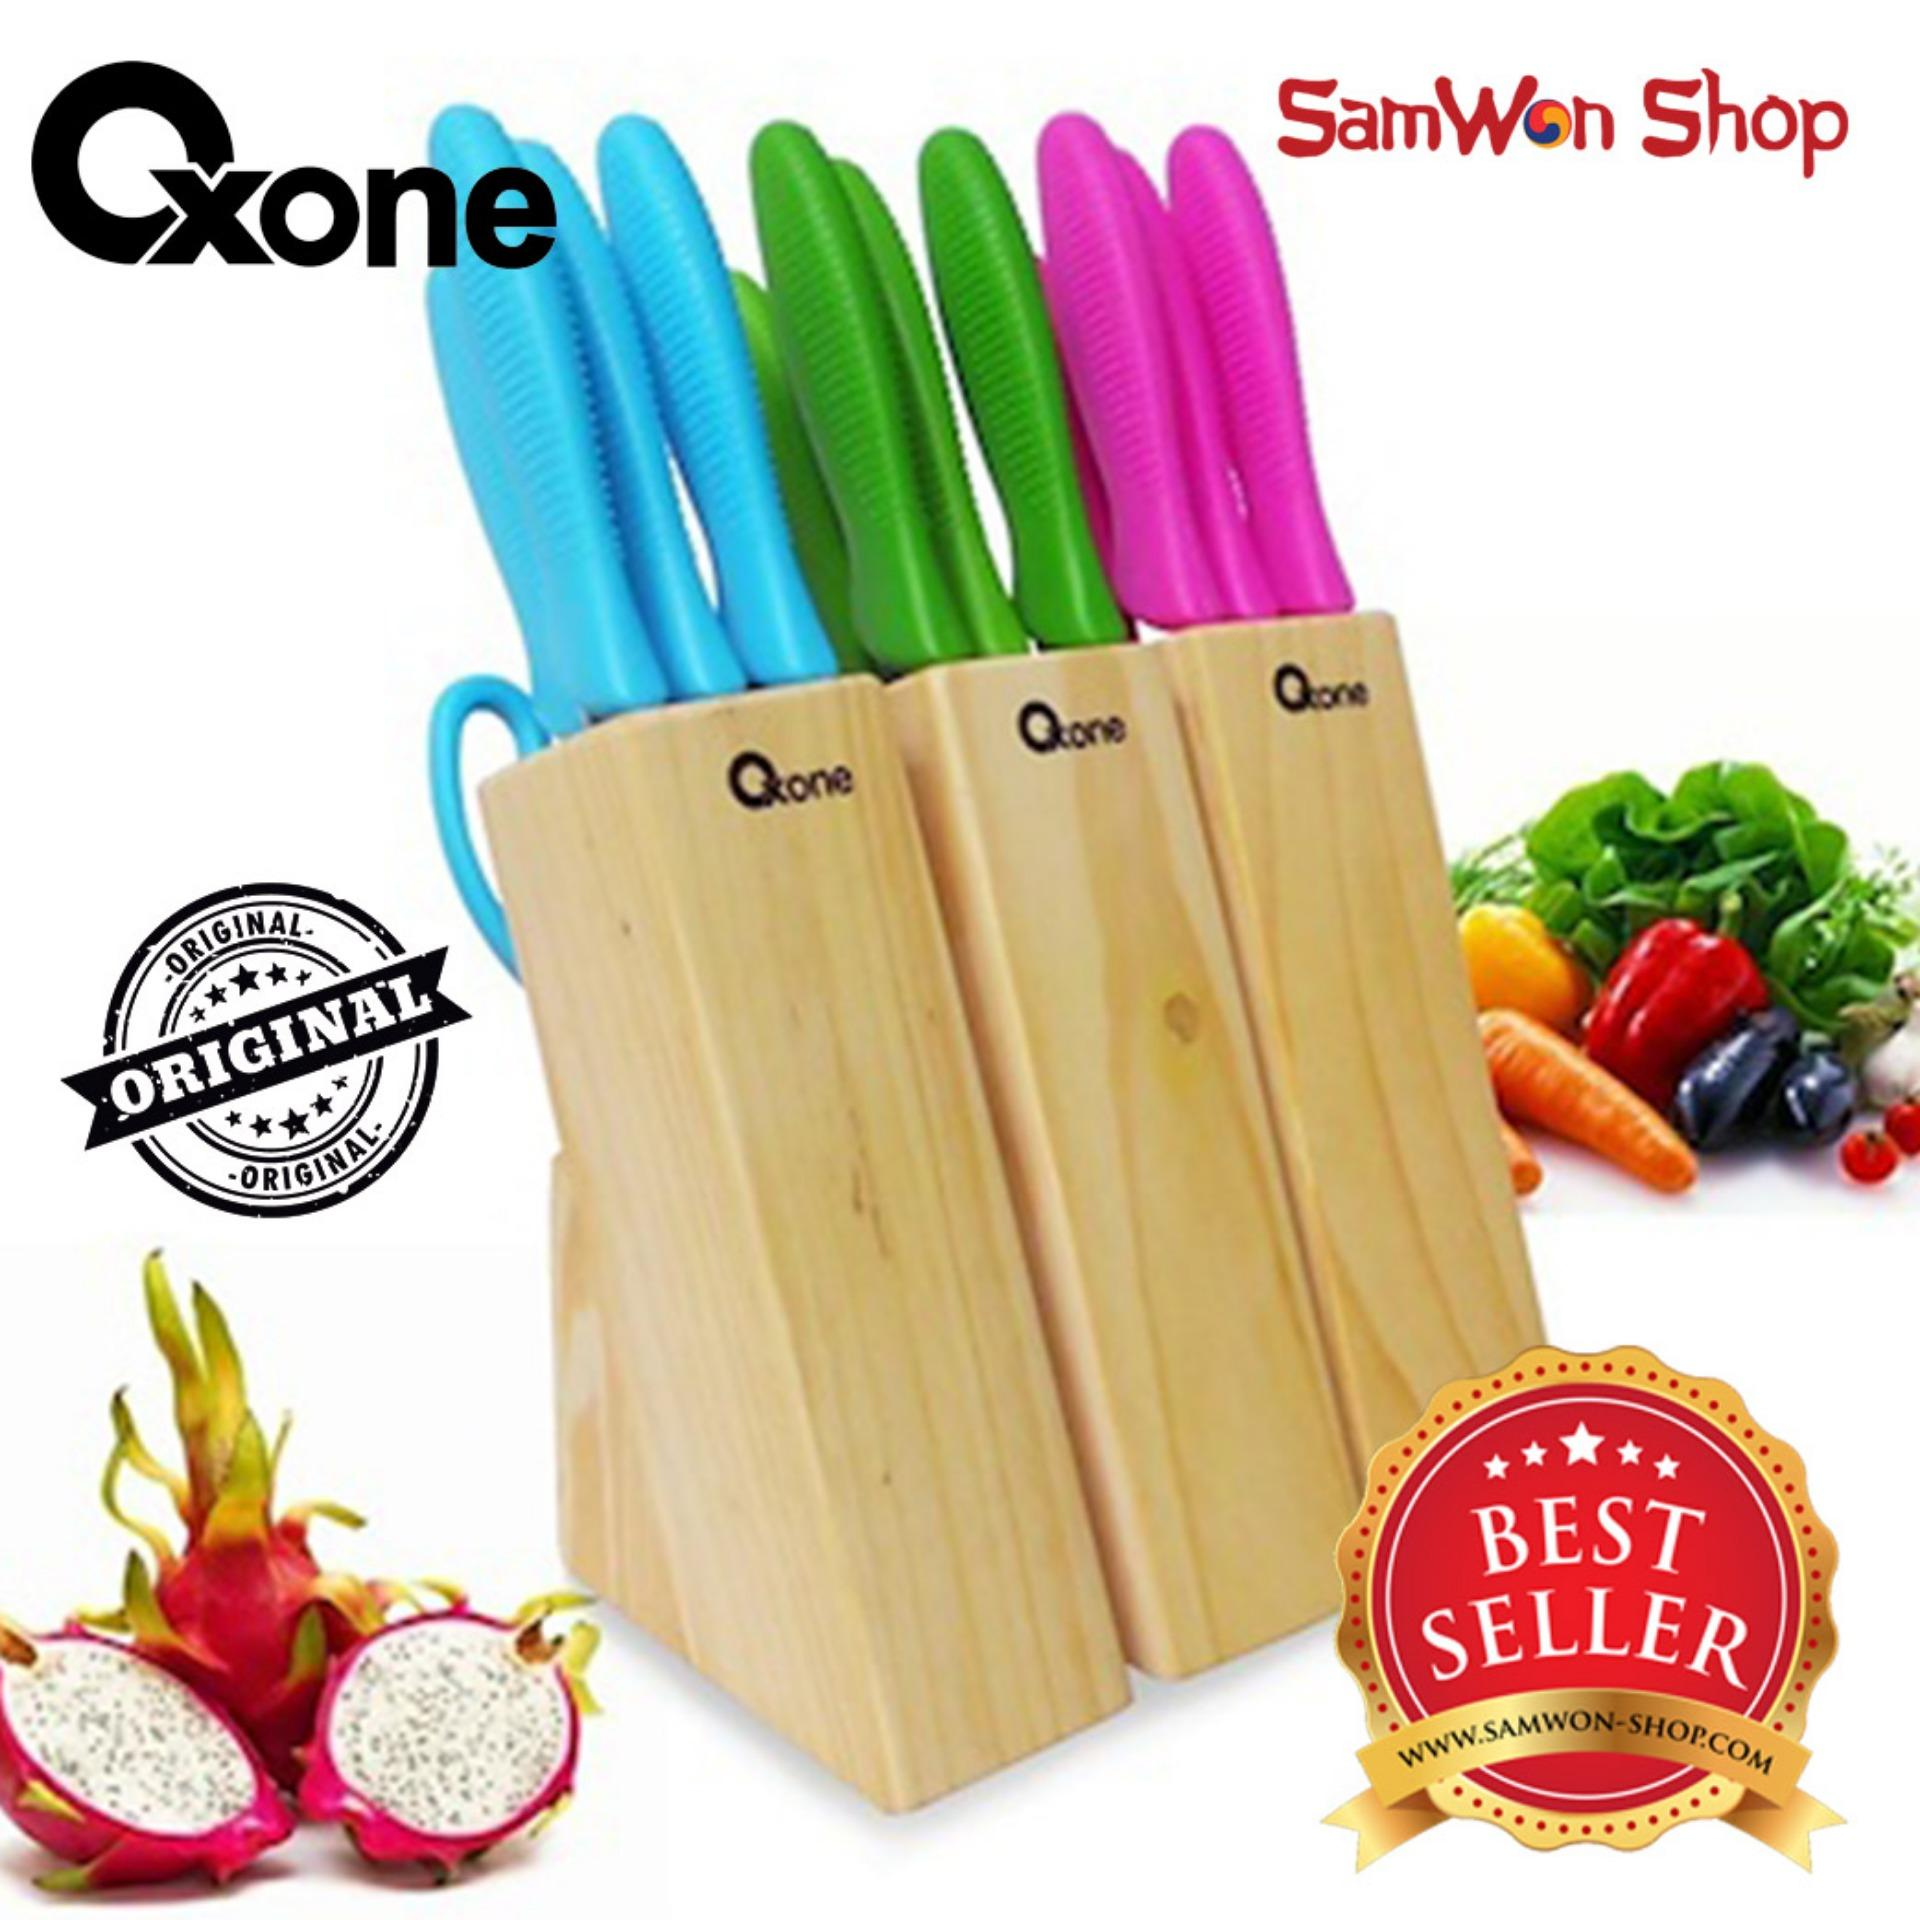 Oxone Ox 914 4pcs Folding Silicone Measuring Cups Spec Dan Daftar 929 Onion Ampamp Salad Slicer Rainbow Knife Set 606idr99800 Rp 110000